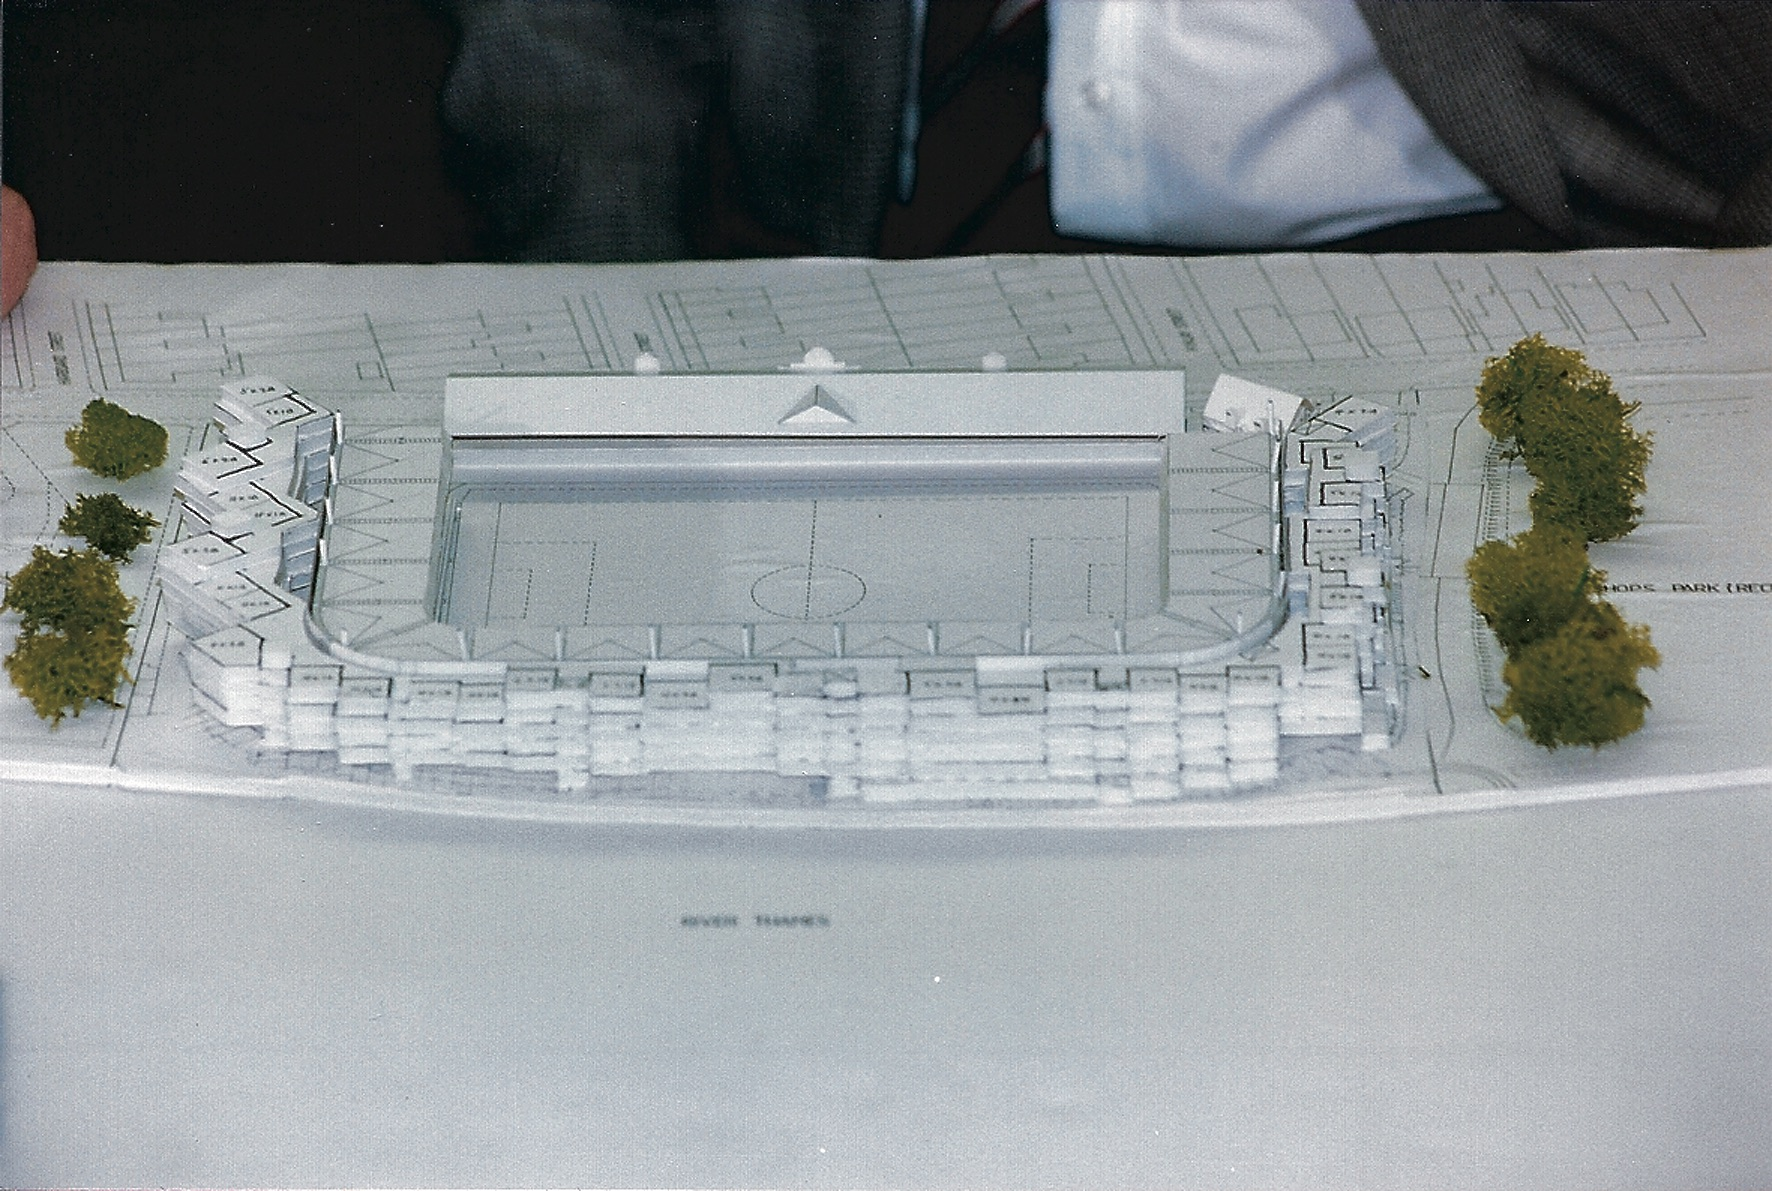 Artists Model of the 2002 design